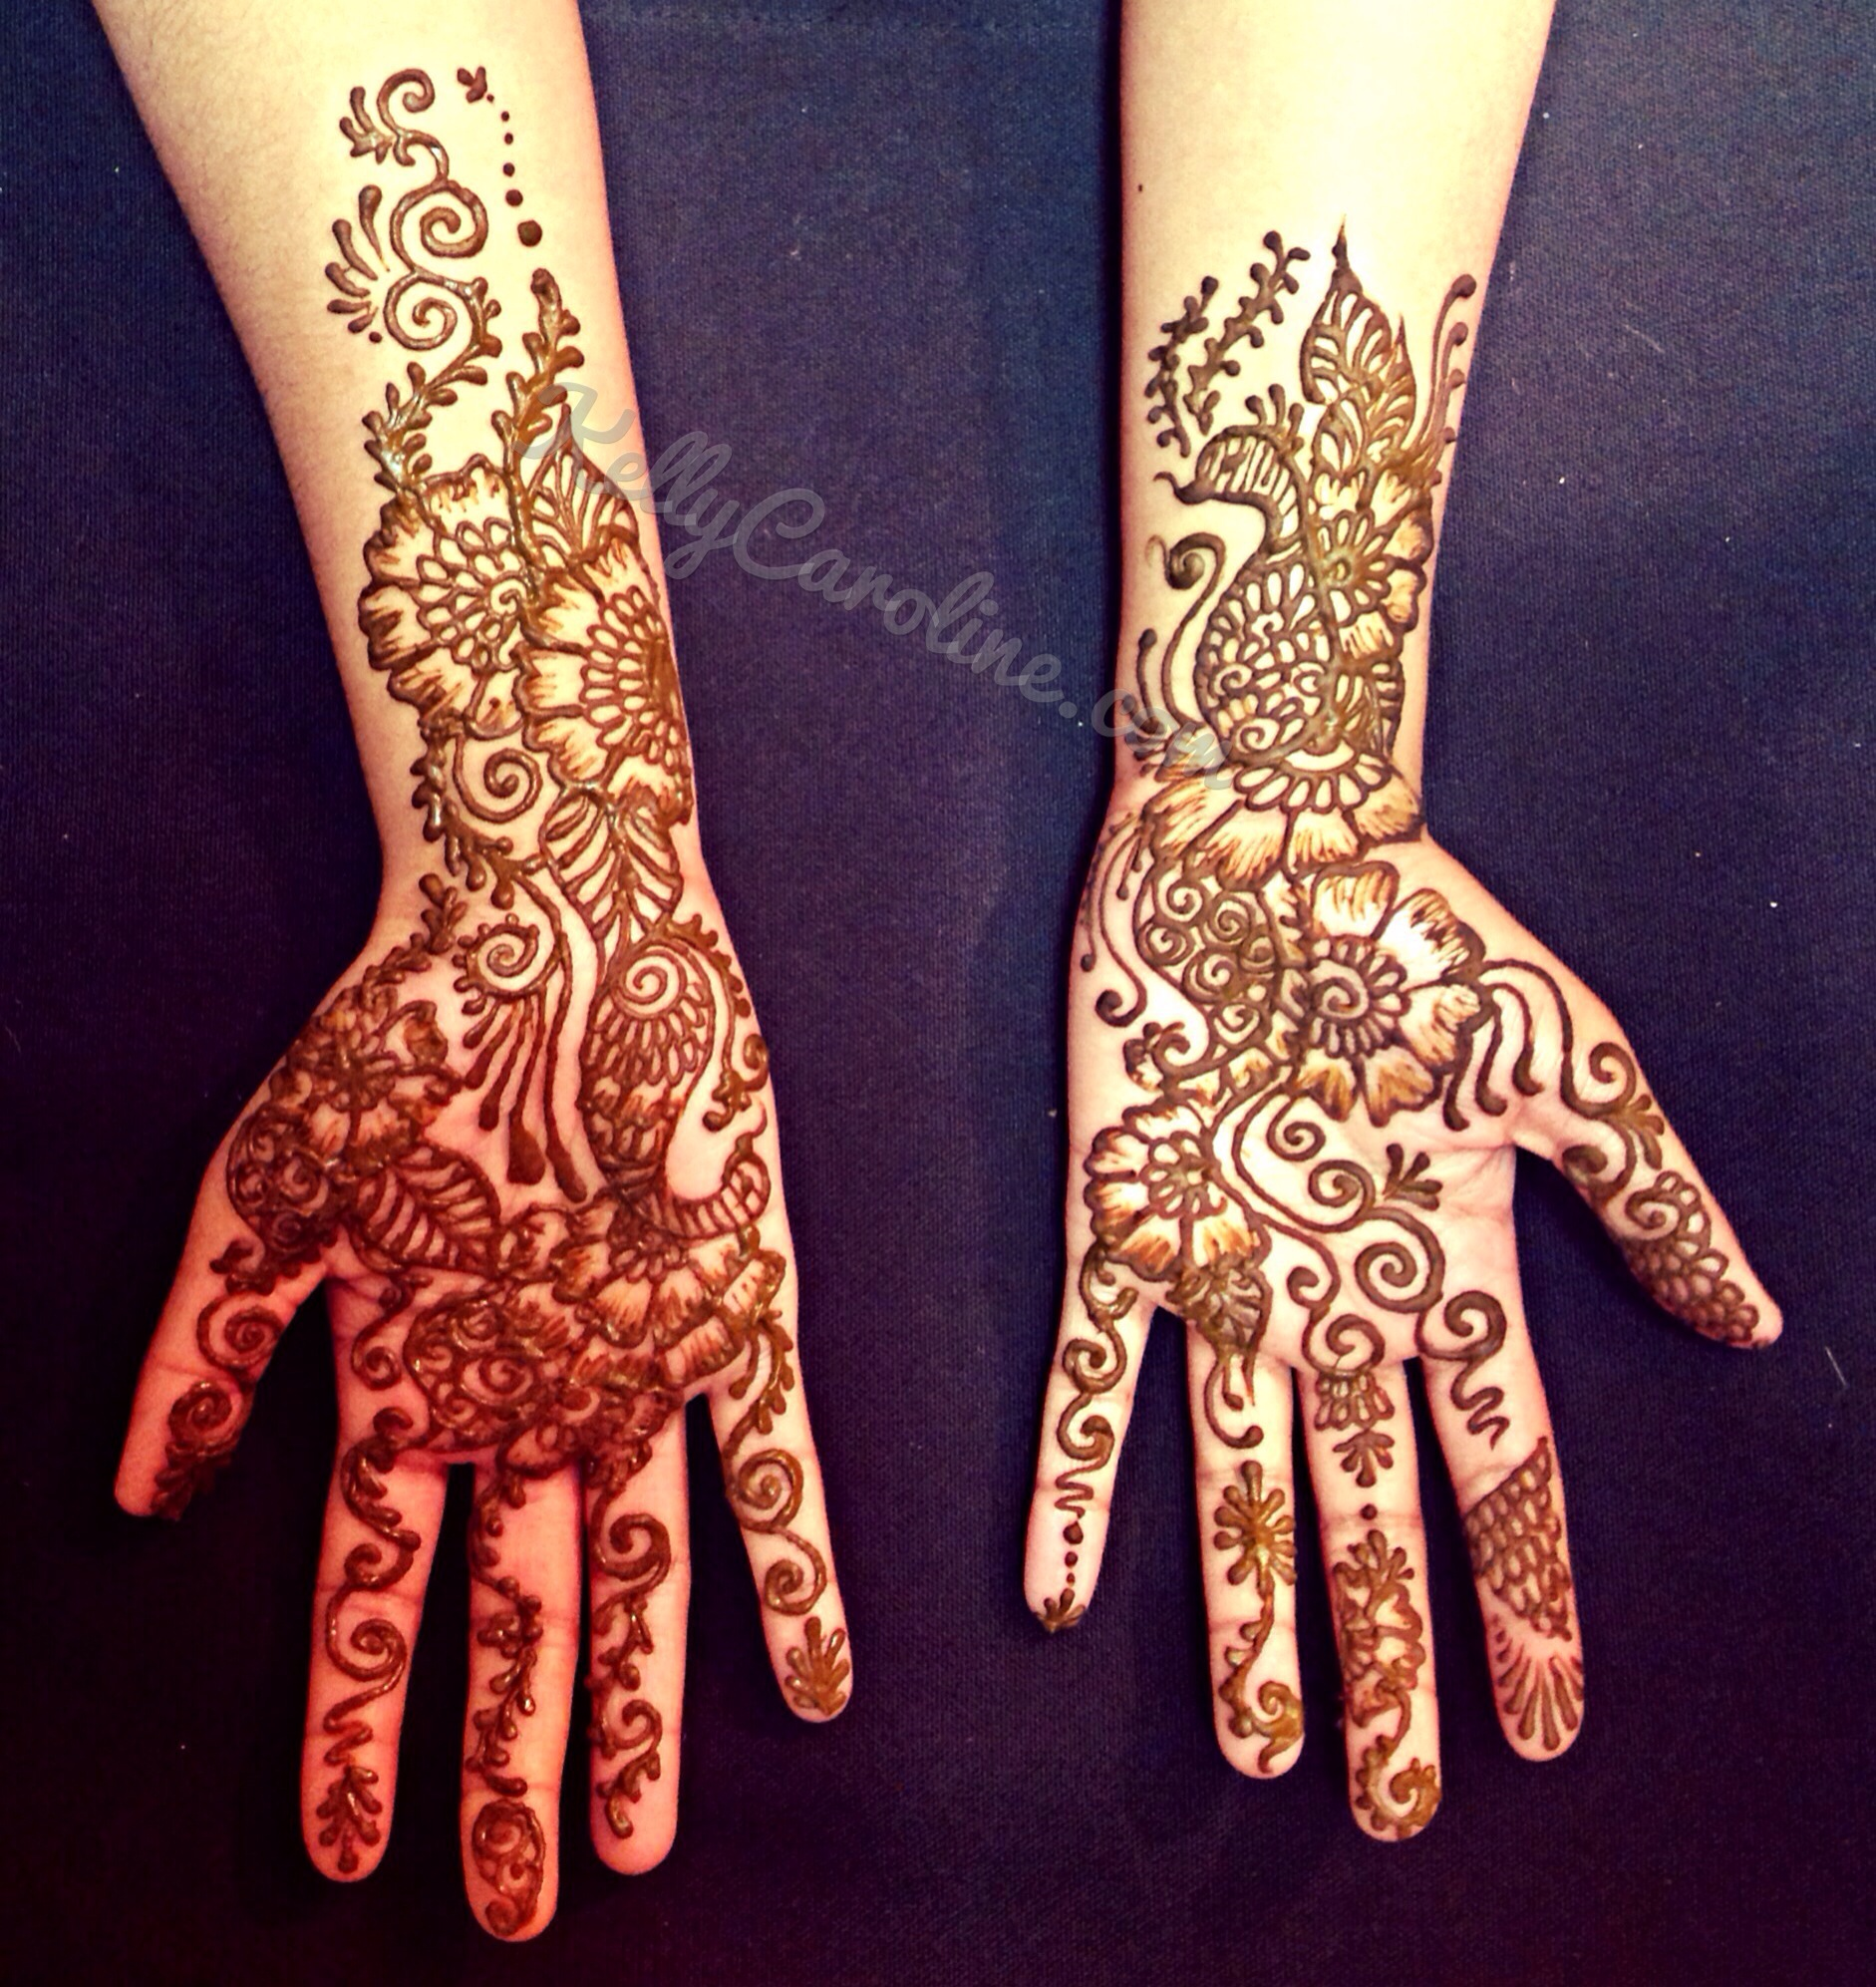 henna designs Archives - Kelly Caroline | Kelly Caroline